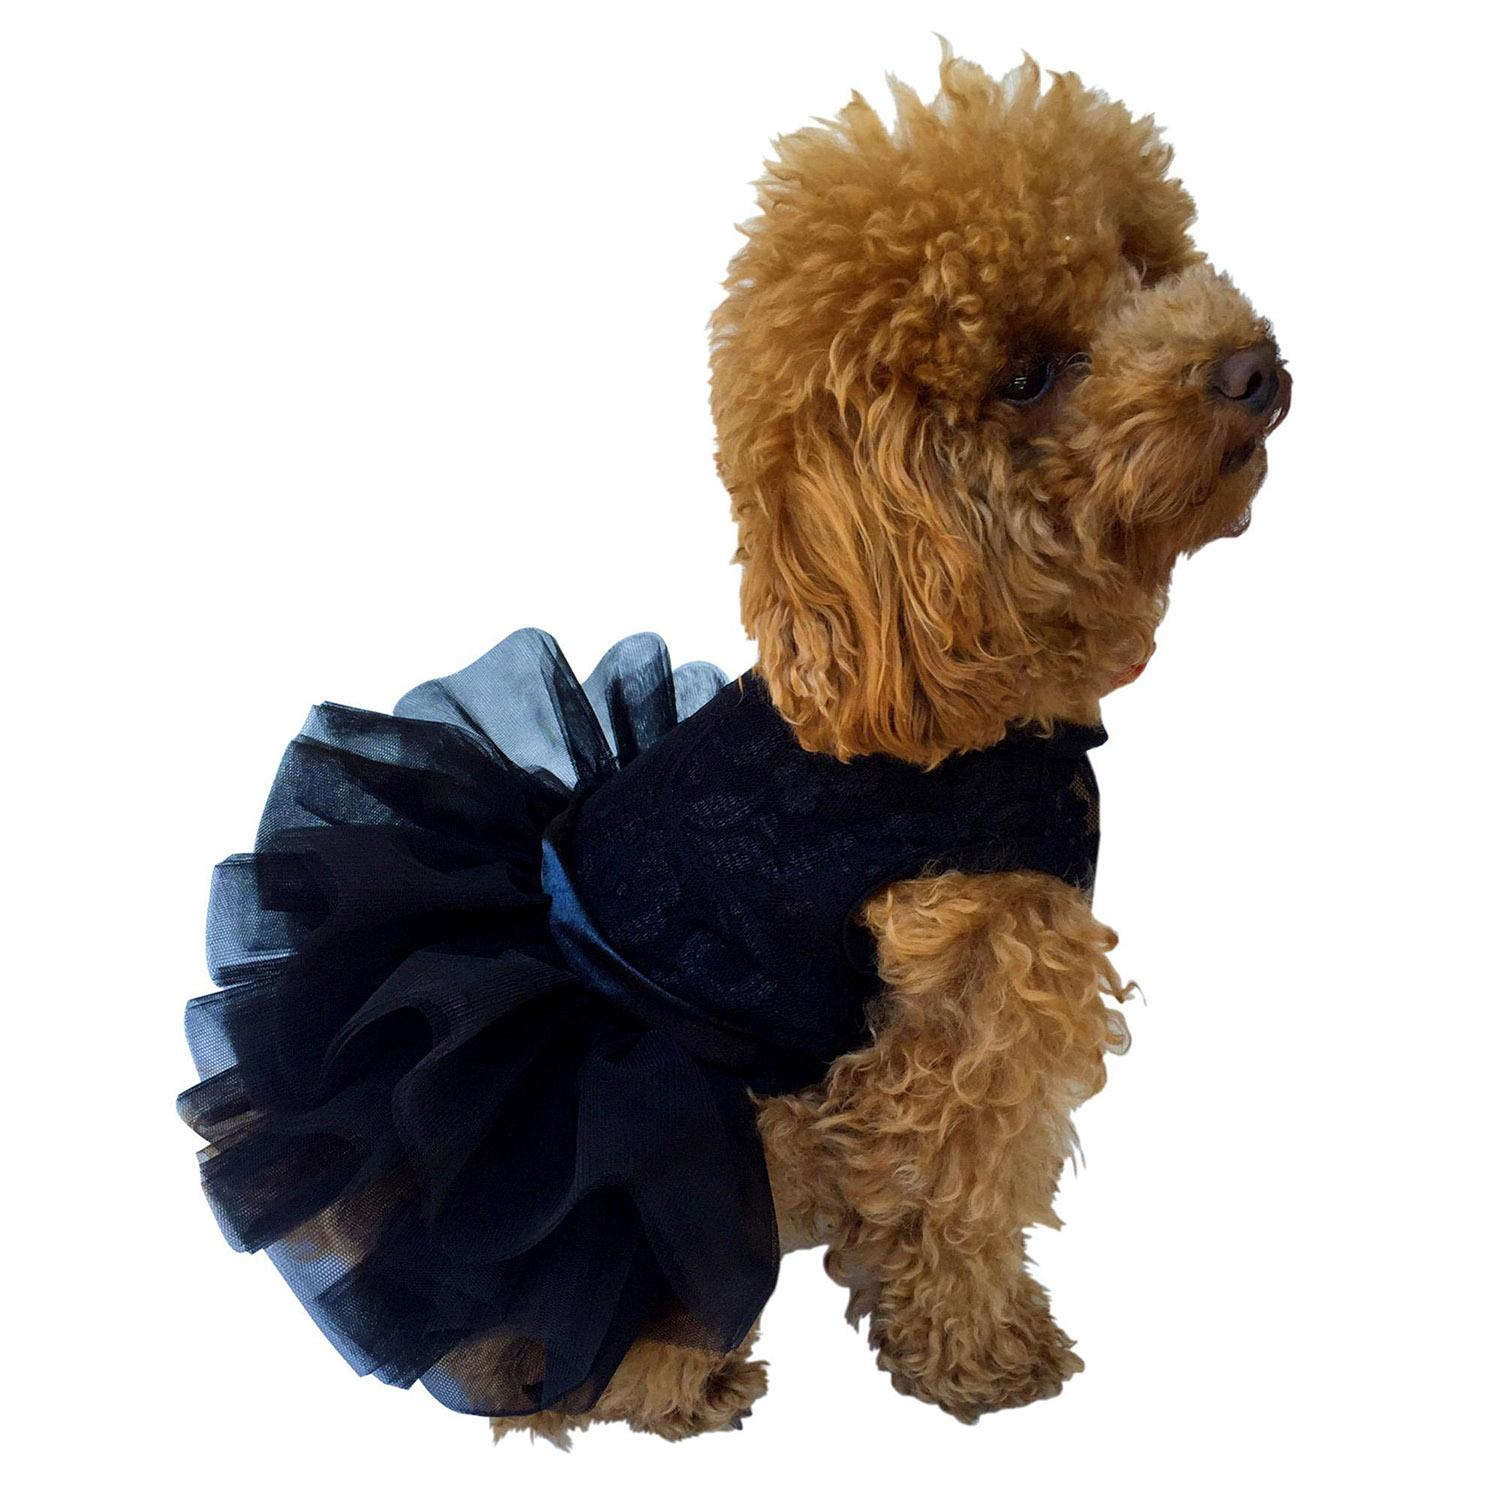 Fufu Tutu Lace Dog Dress - Black